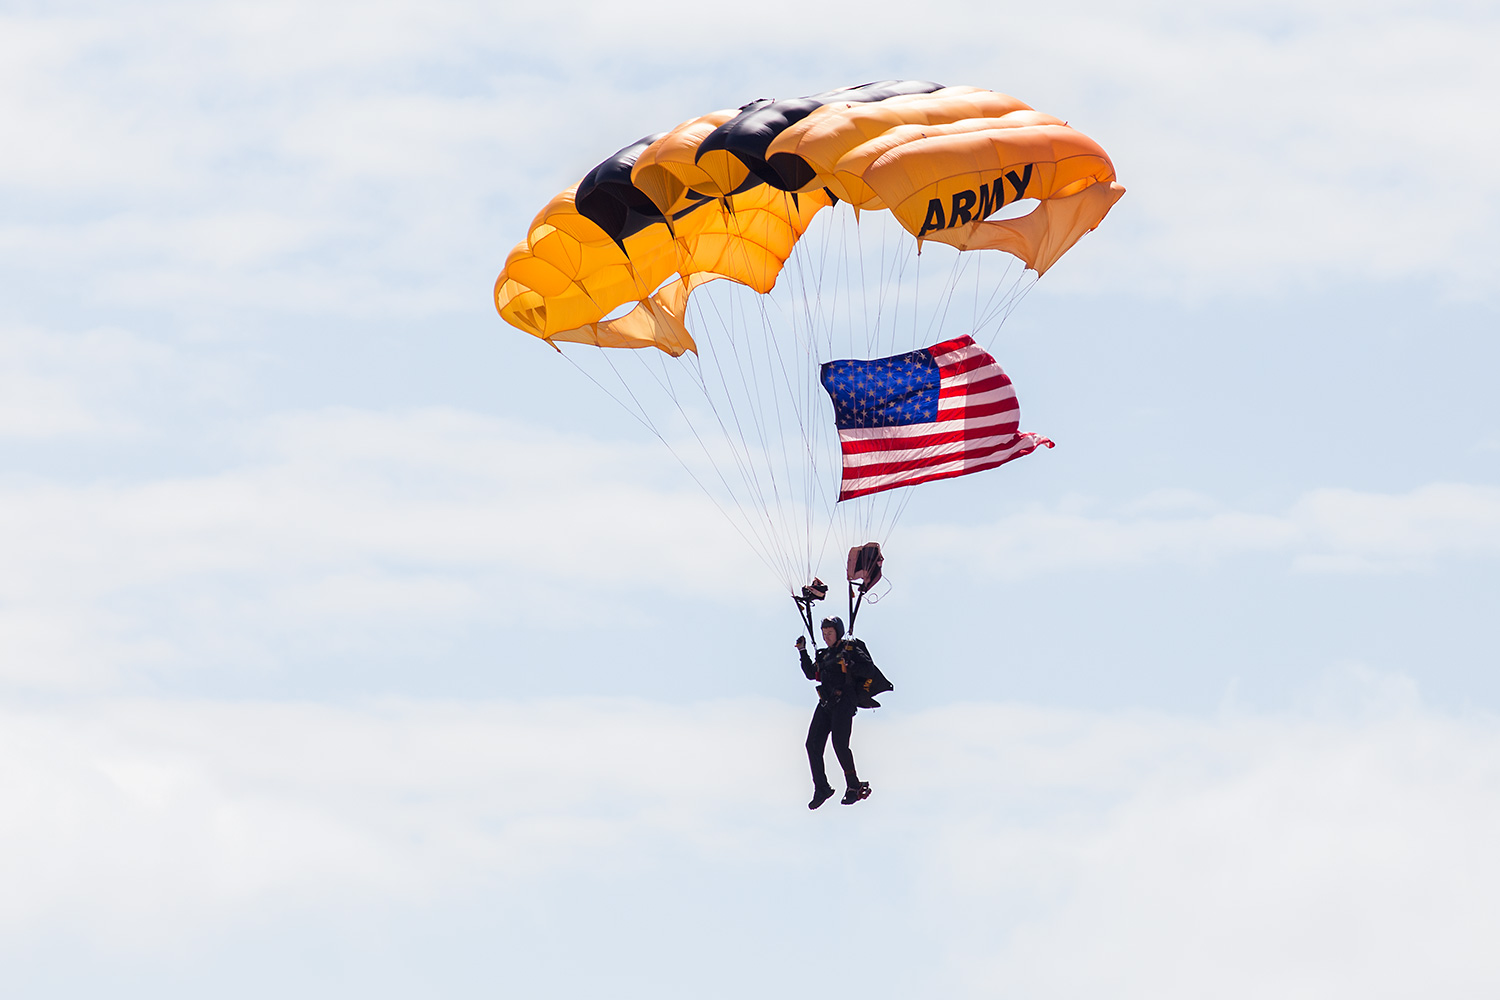 The Golden Knights dropped in with the American flag for the National Anthem.